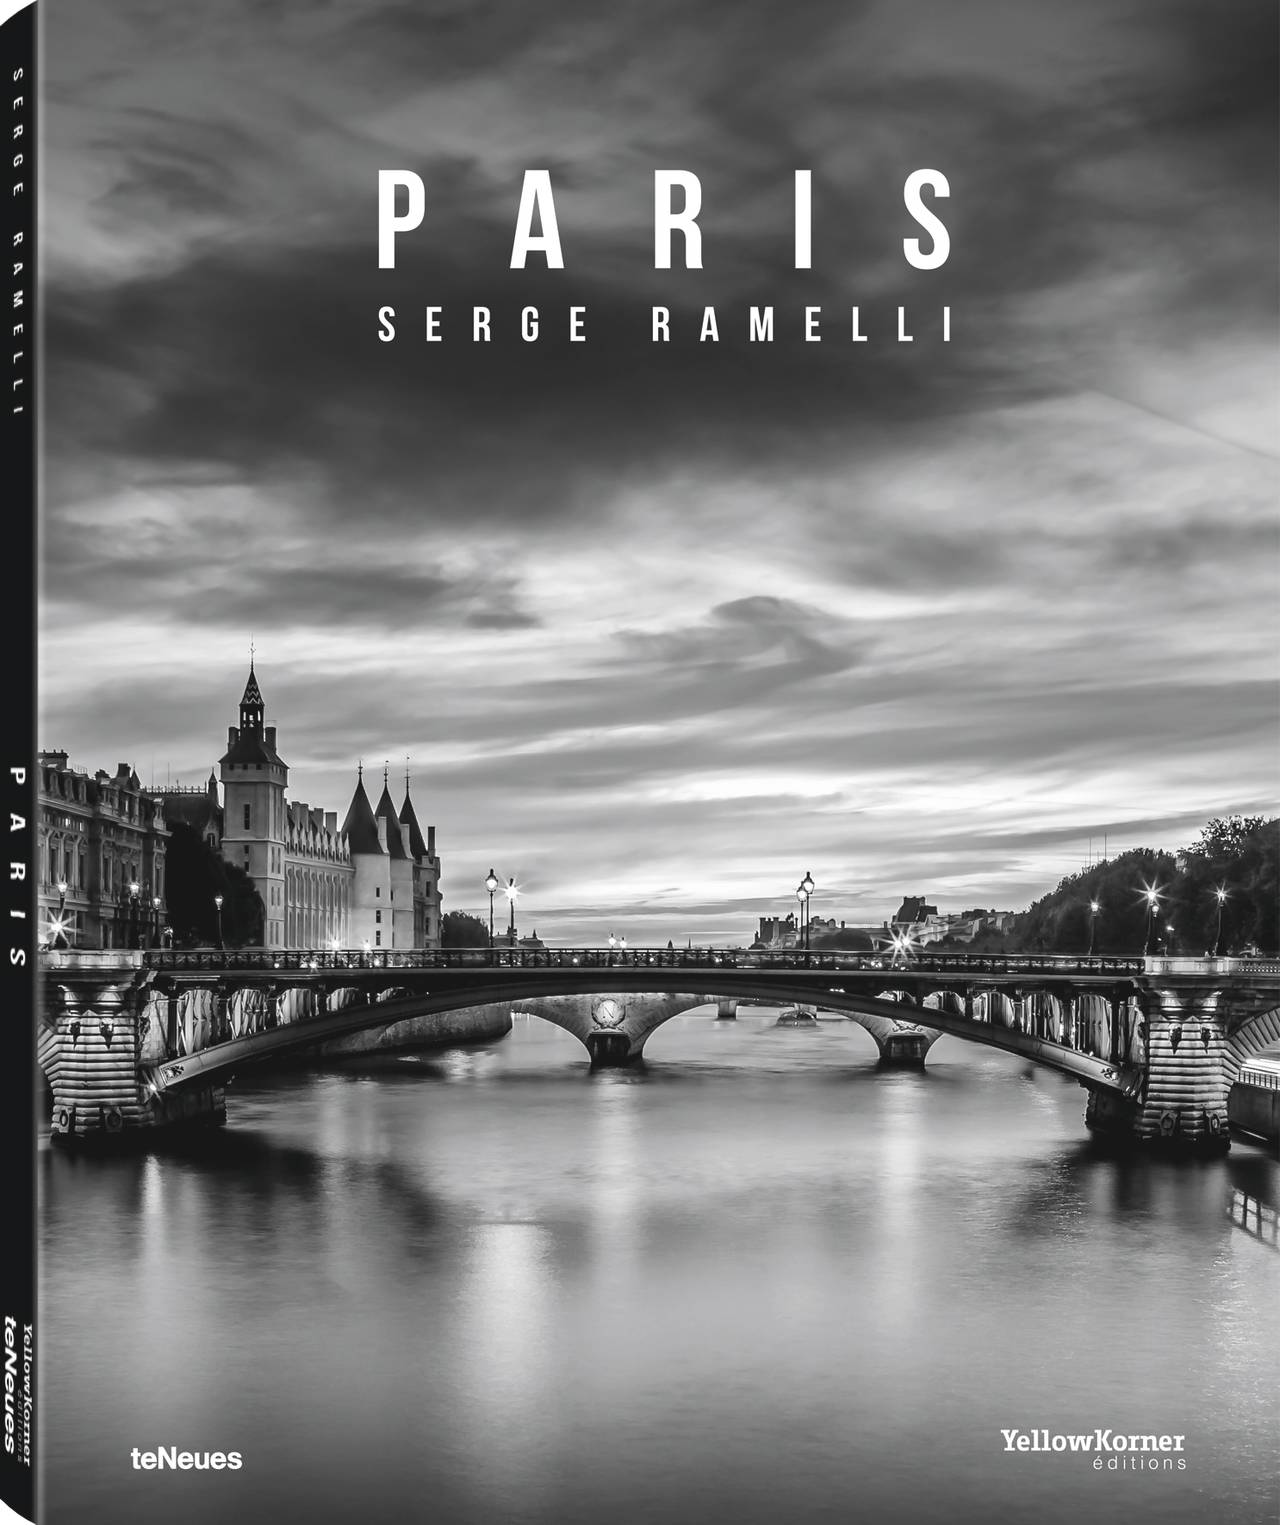 © Paris by Serge Ramelli, SMALL FORMAT EDITION, published by teNeues, www.teneues.com. CONCIERGERIE, © 2015 YellowKorner Editions, Photo © Serge Ramelli. All rights reserved.